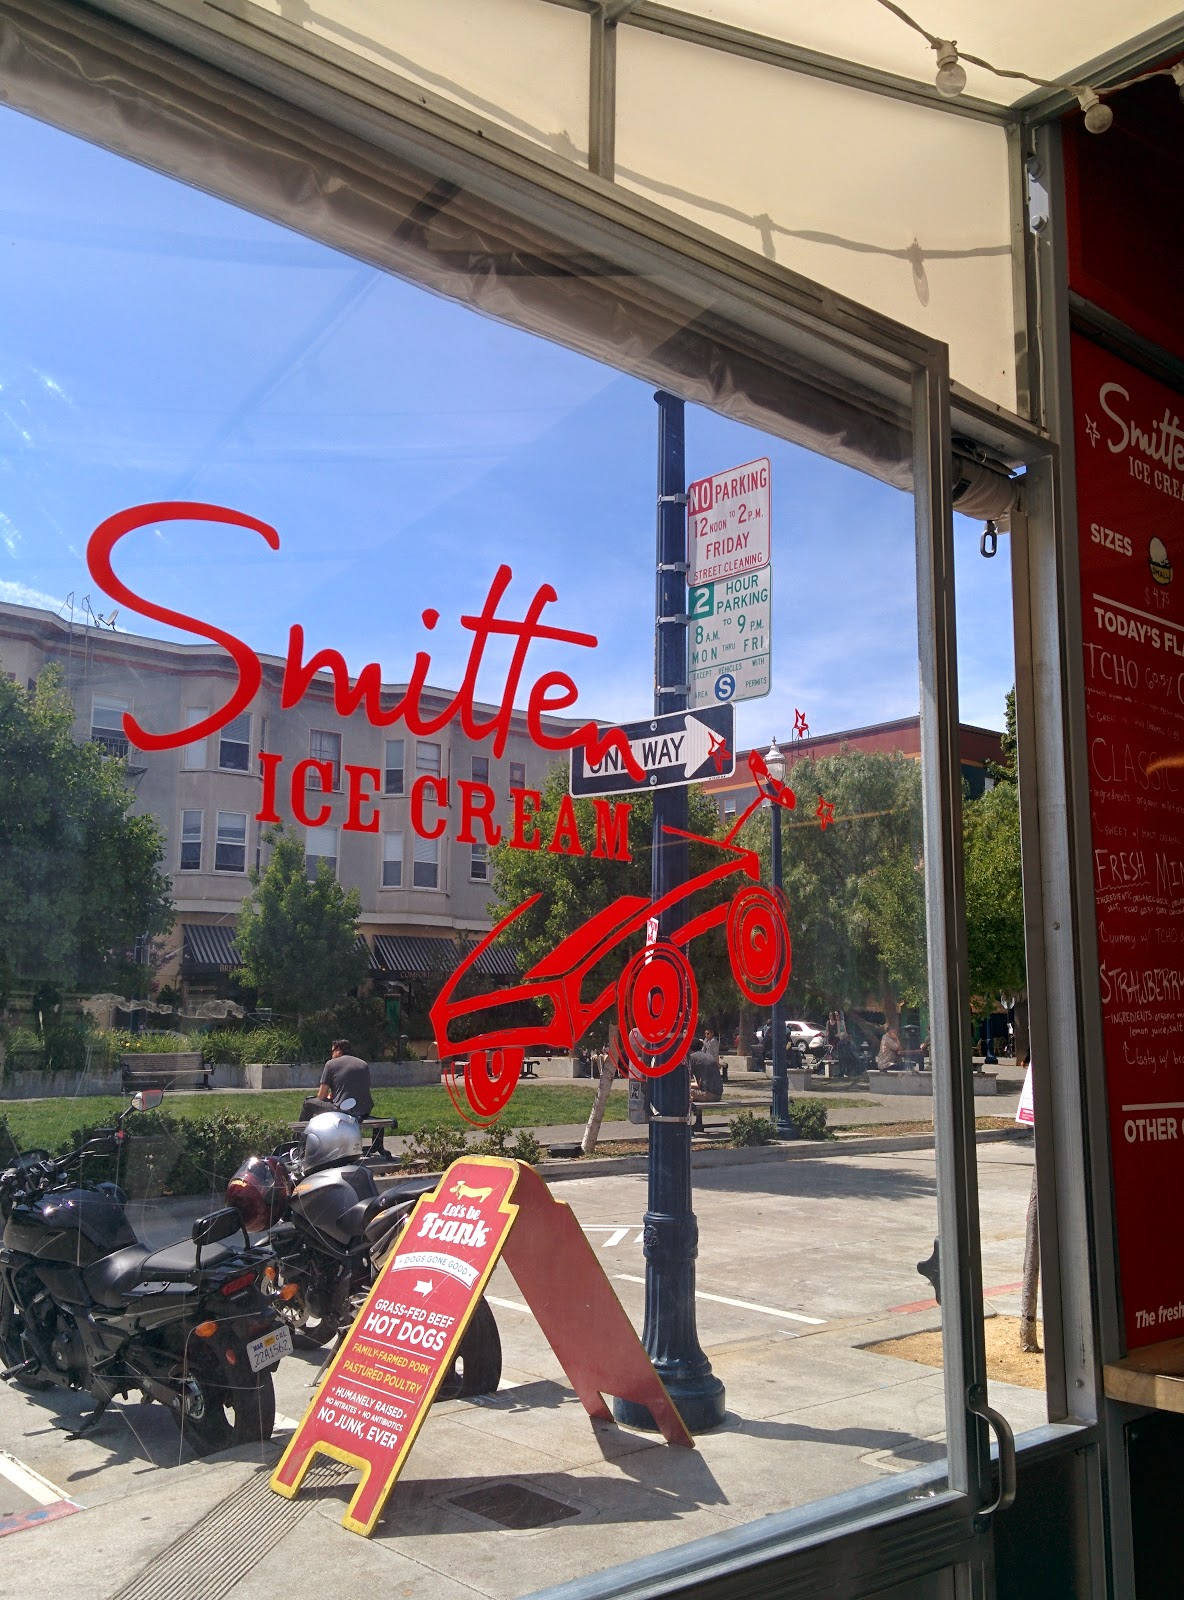 http://smittenicecream.com/